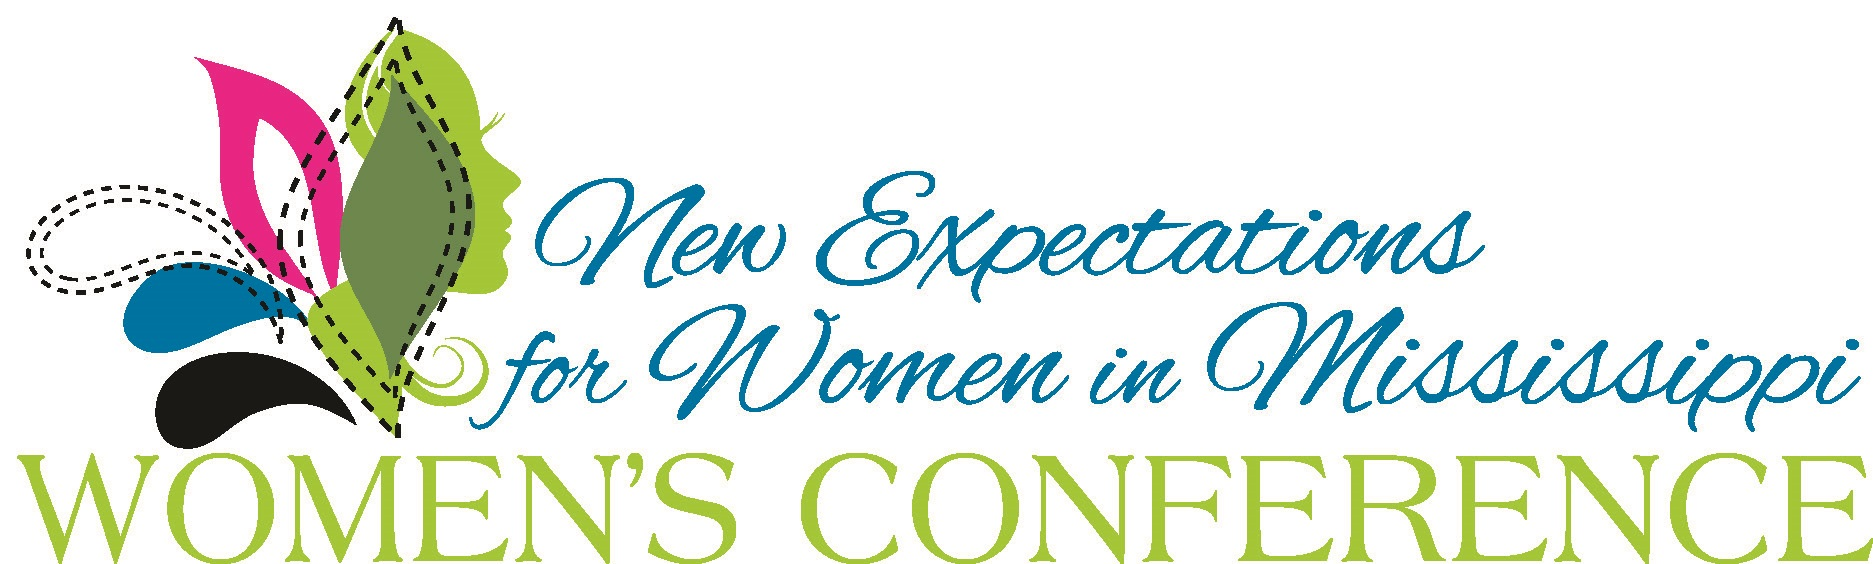 3RD Annual NEWMS Women's Conference